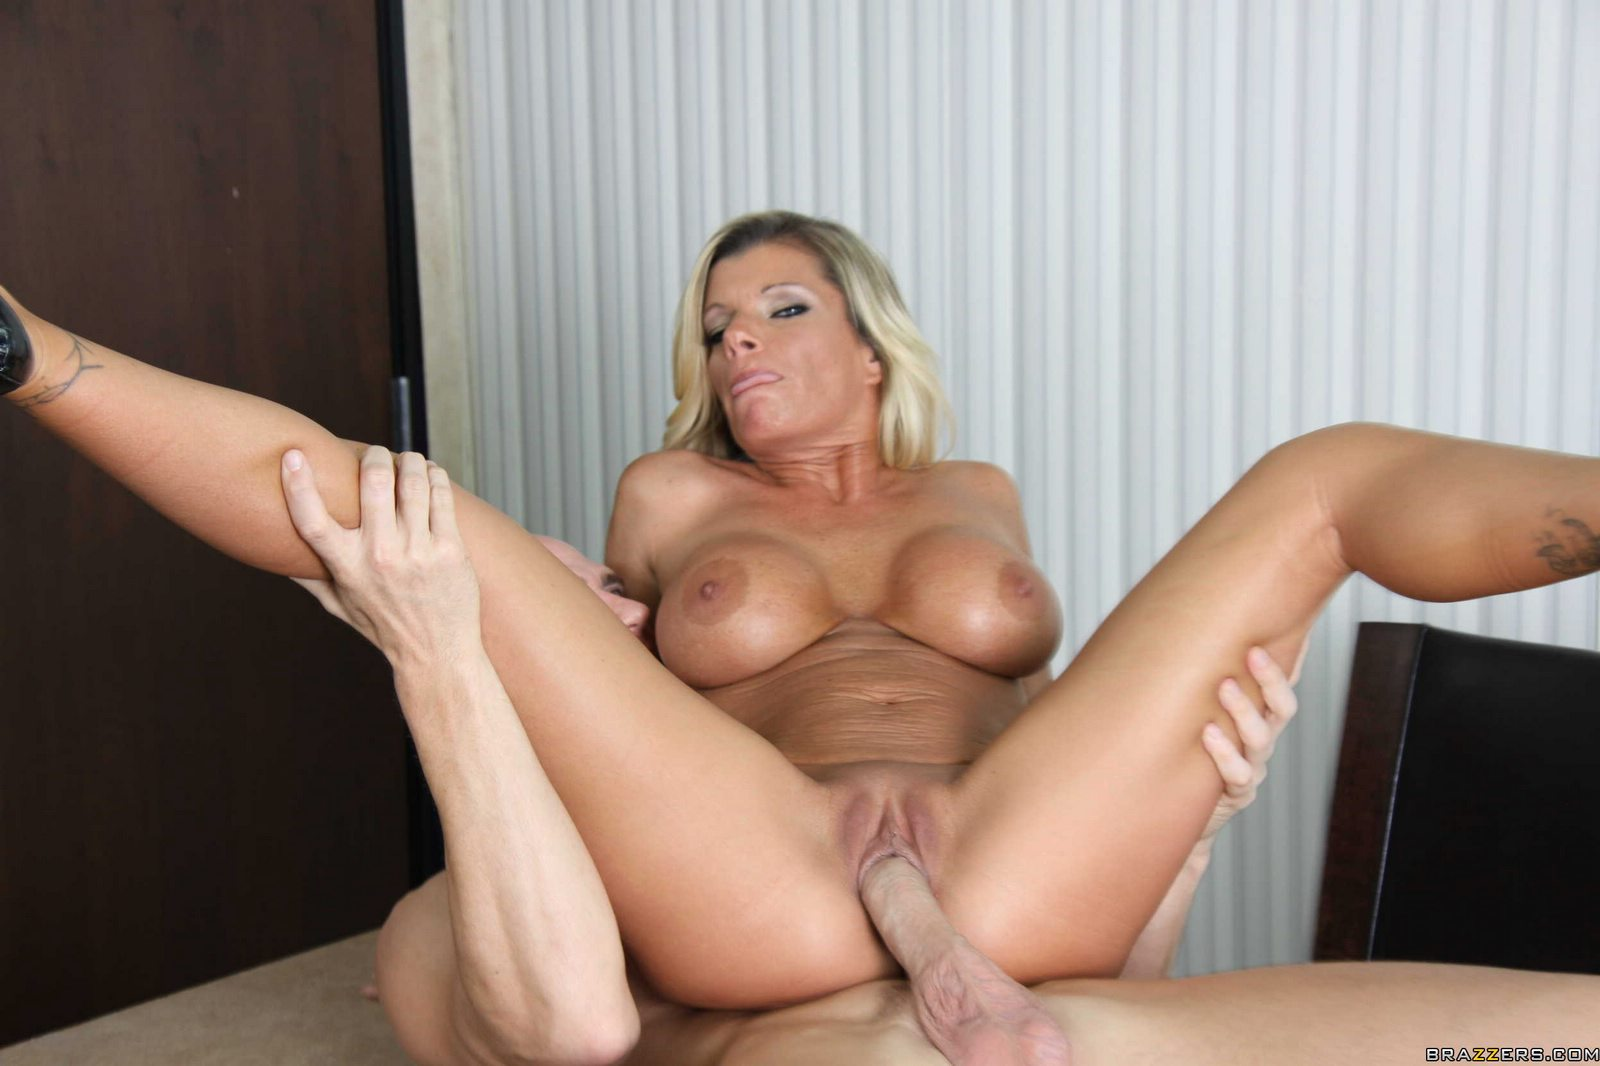 Porn star kristal summers your